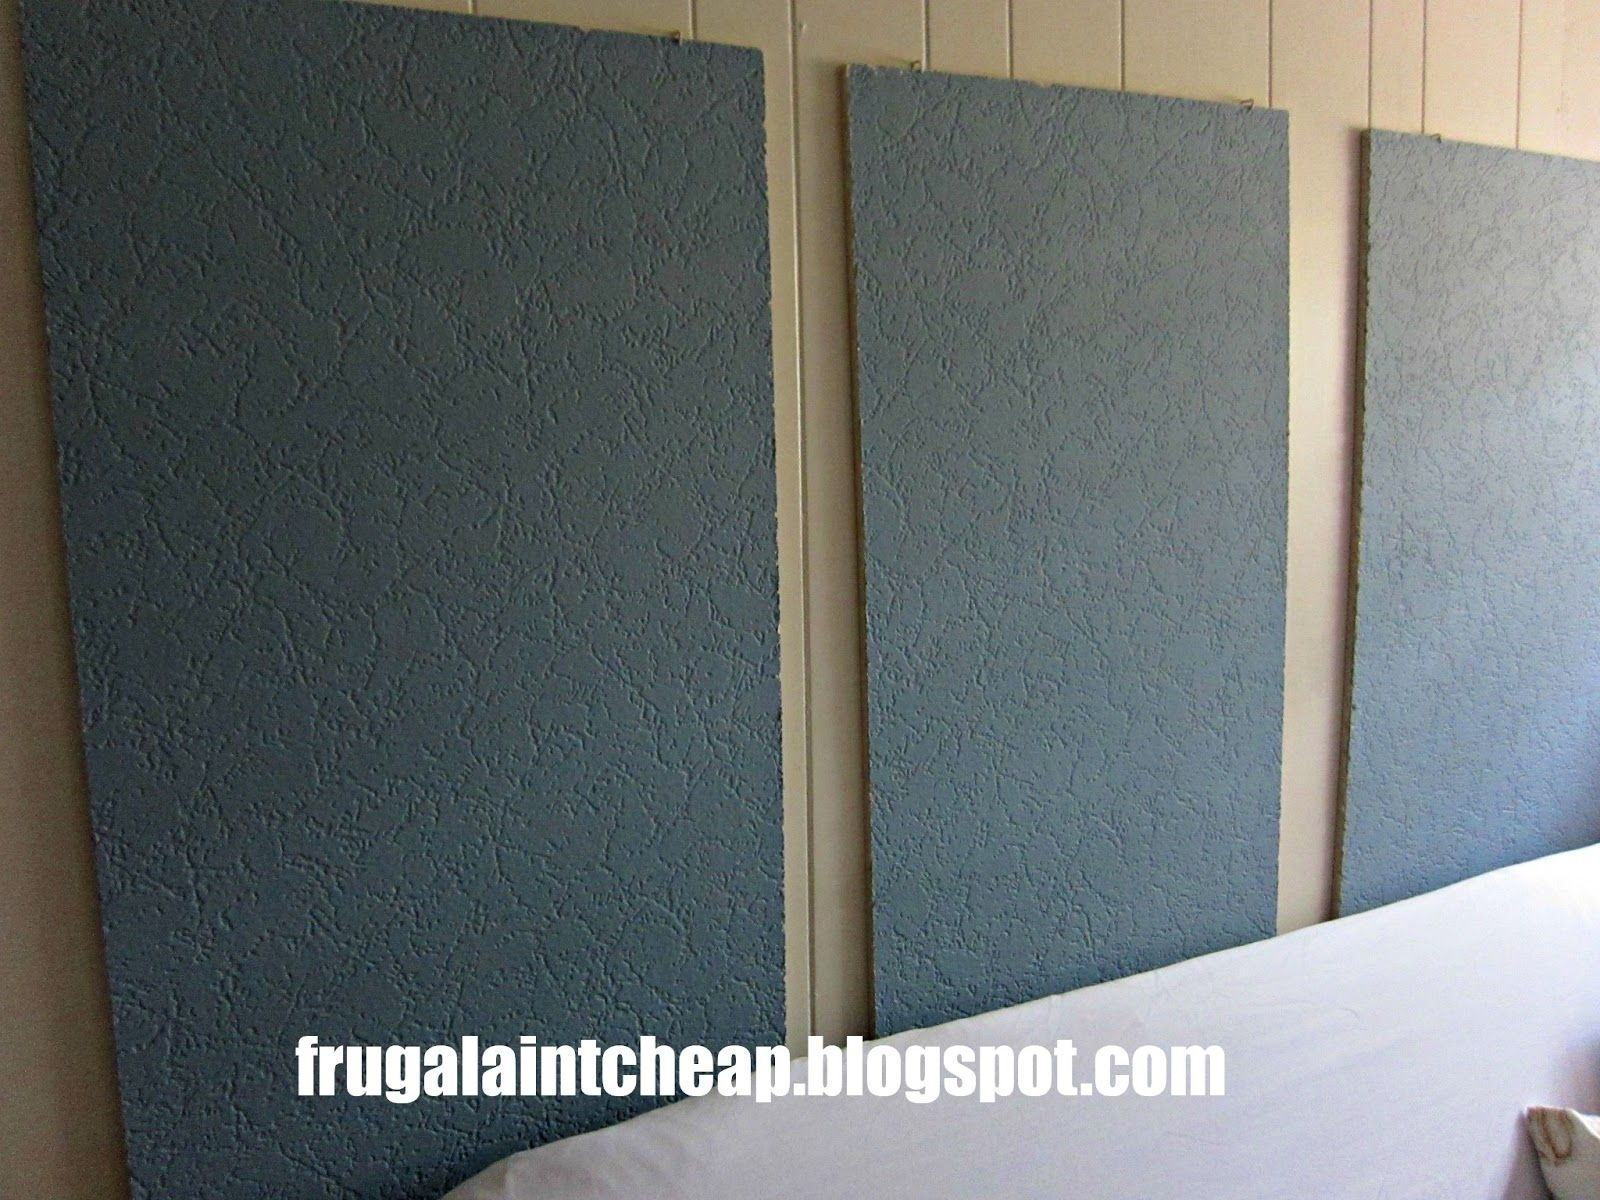 Frugal Ainu0026#39;t Cheap: Soundproofing a Room - need to soundproof my basement - on a tight budget ...